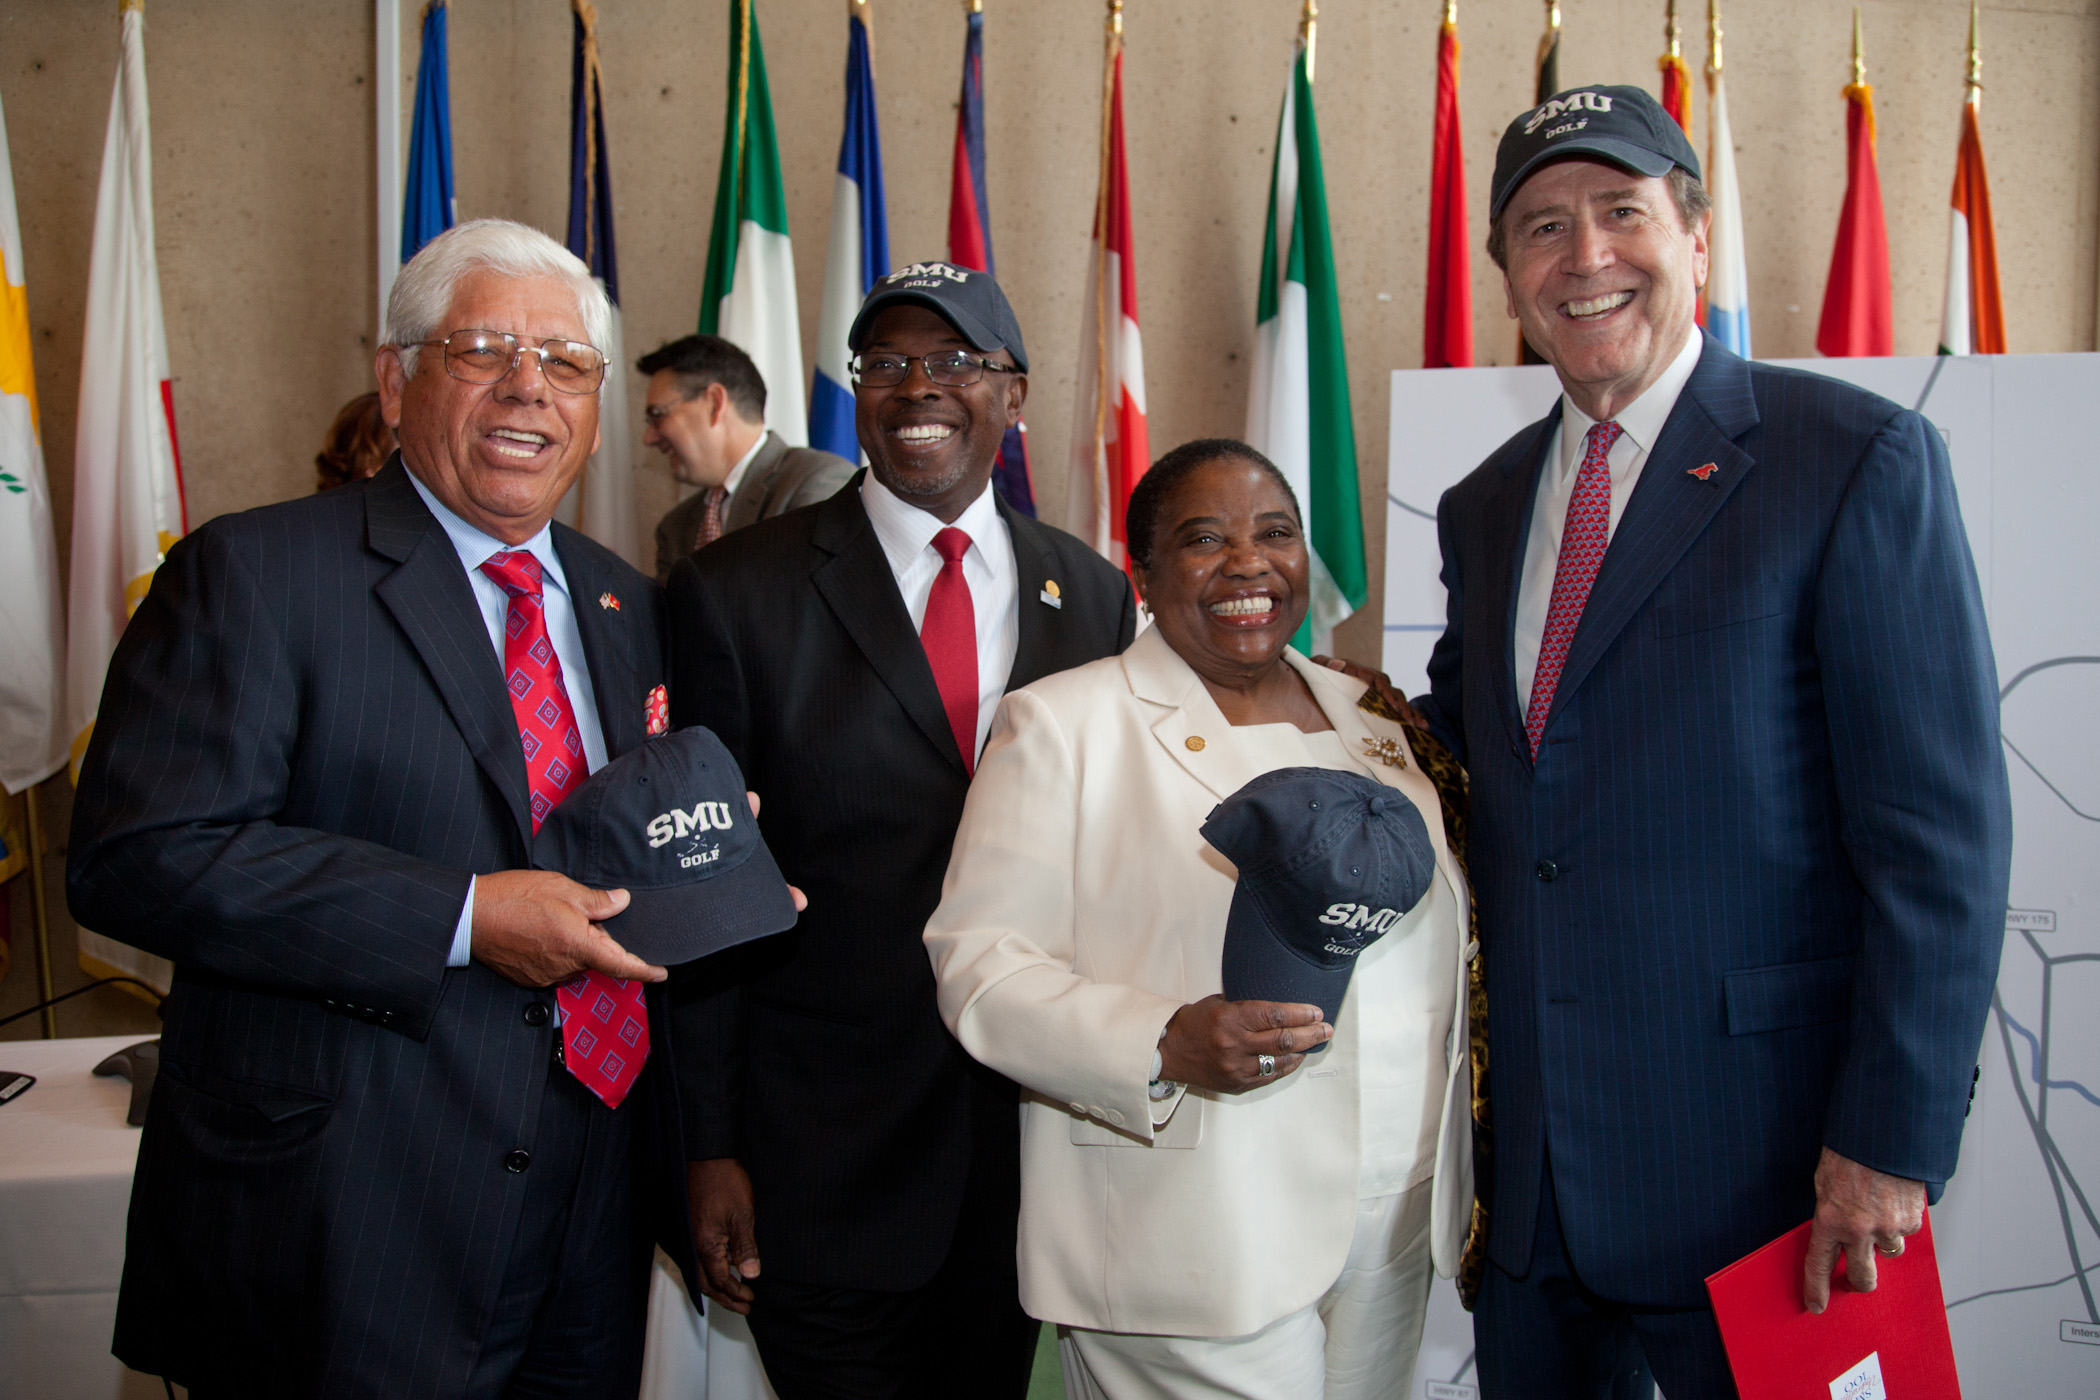 Professional Golfer Lee Trevino, Dallas Deputy Mayor Pro Tem Tennell Atkins, Dallas City Councilwoman Vonciel Jones Hill, and SMU President R. Gerald Turner